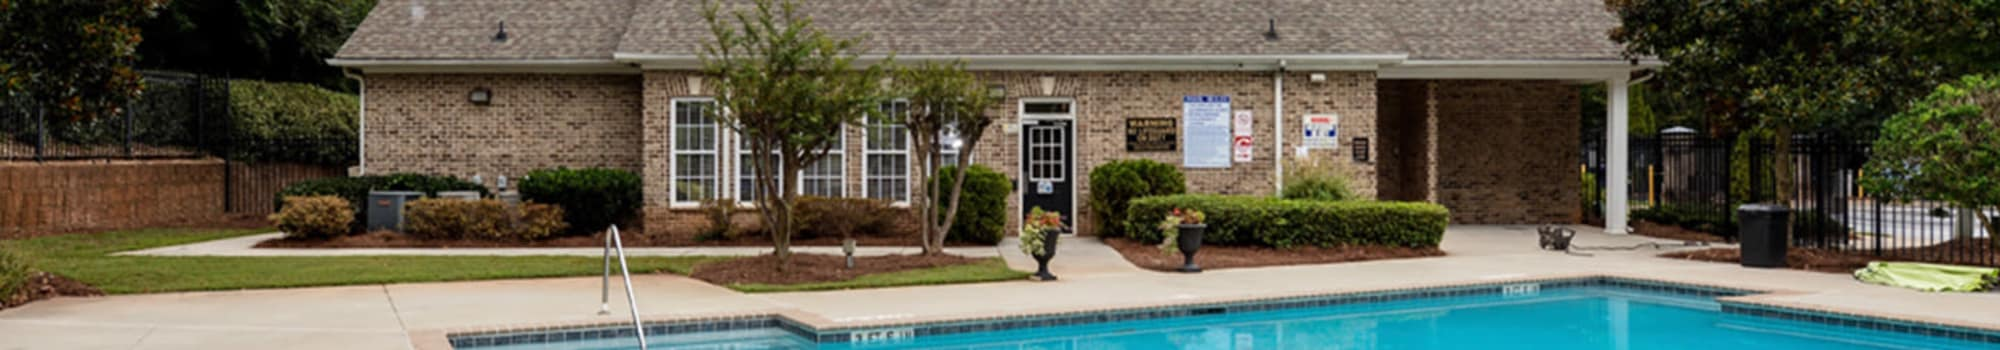 Retreat at Stonecrest cares about your privacy in Lithonia, Georgia